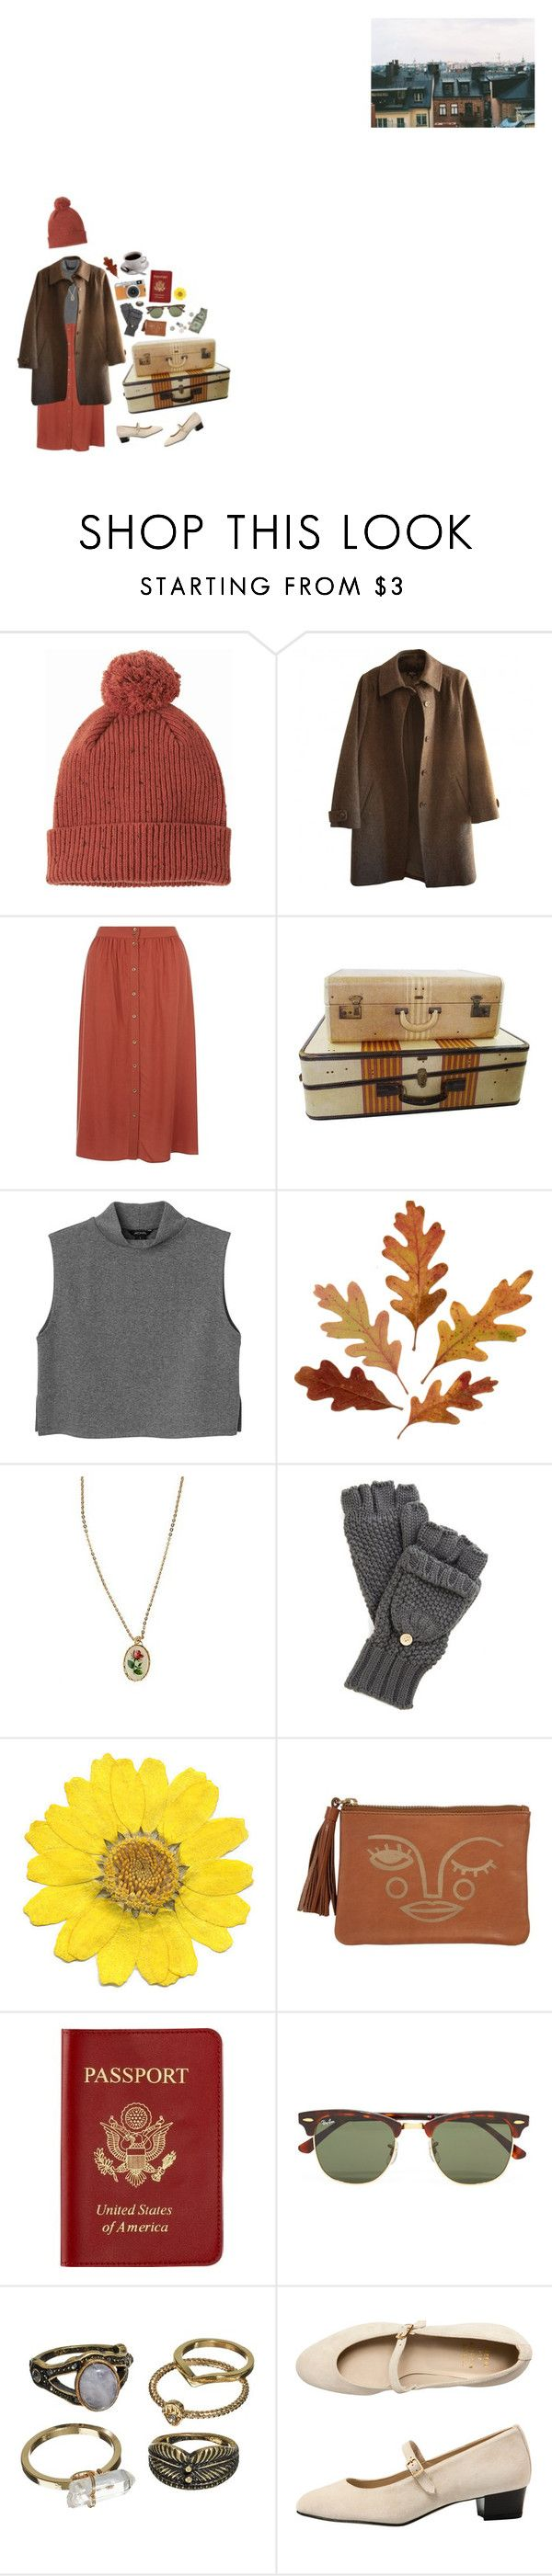 """""""I want to go on adventures with you"""" by fiercelyfloral ❤ liked on Polyvore featuring A.P.C., Monki, Urban Renewal, Passport, Ray-Ban, Mudd, American Apparel, women's clothing, women's fashion and women"""